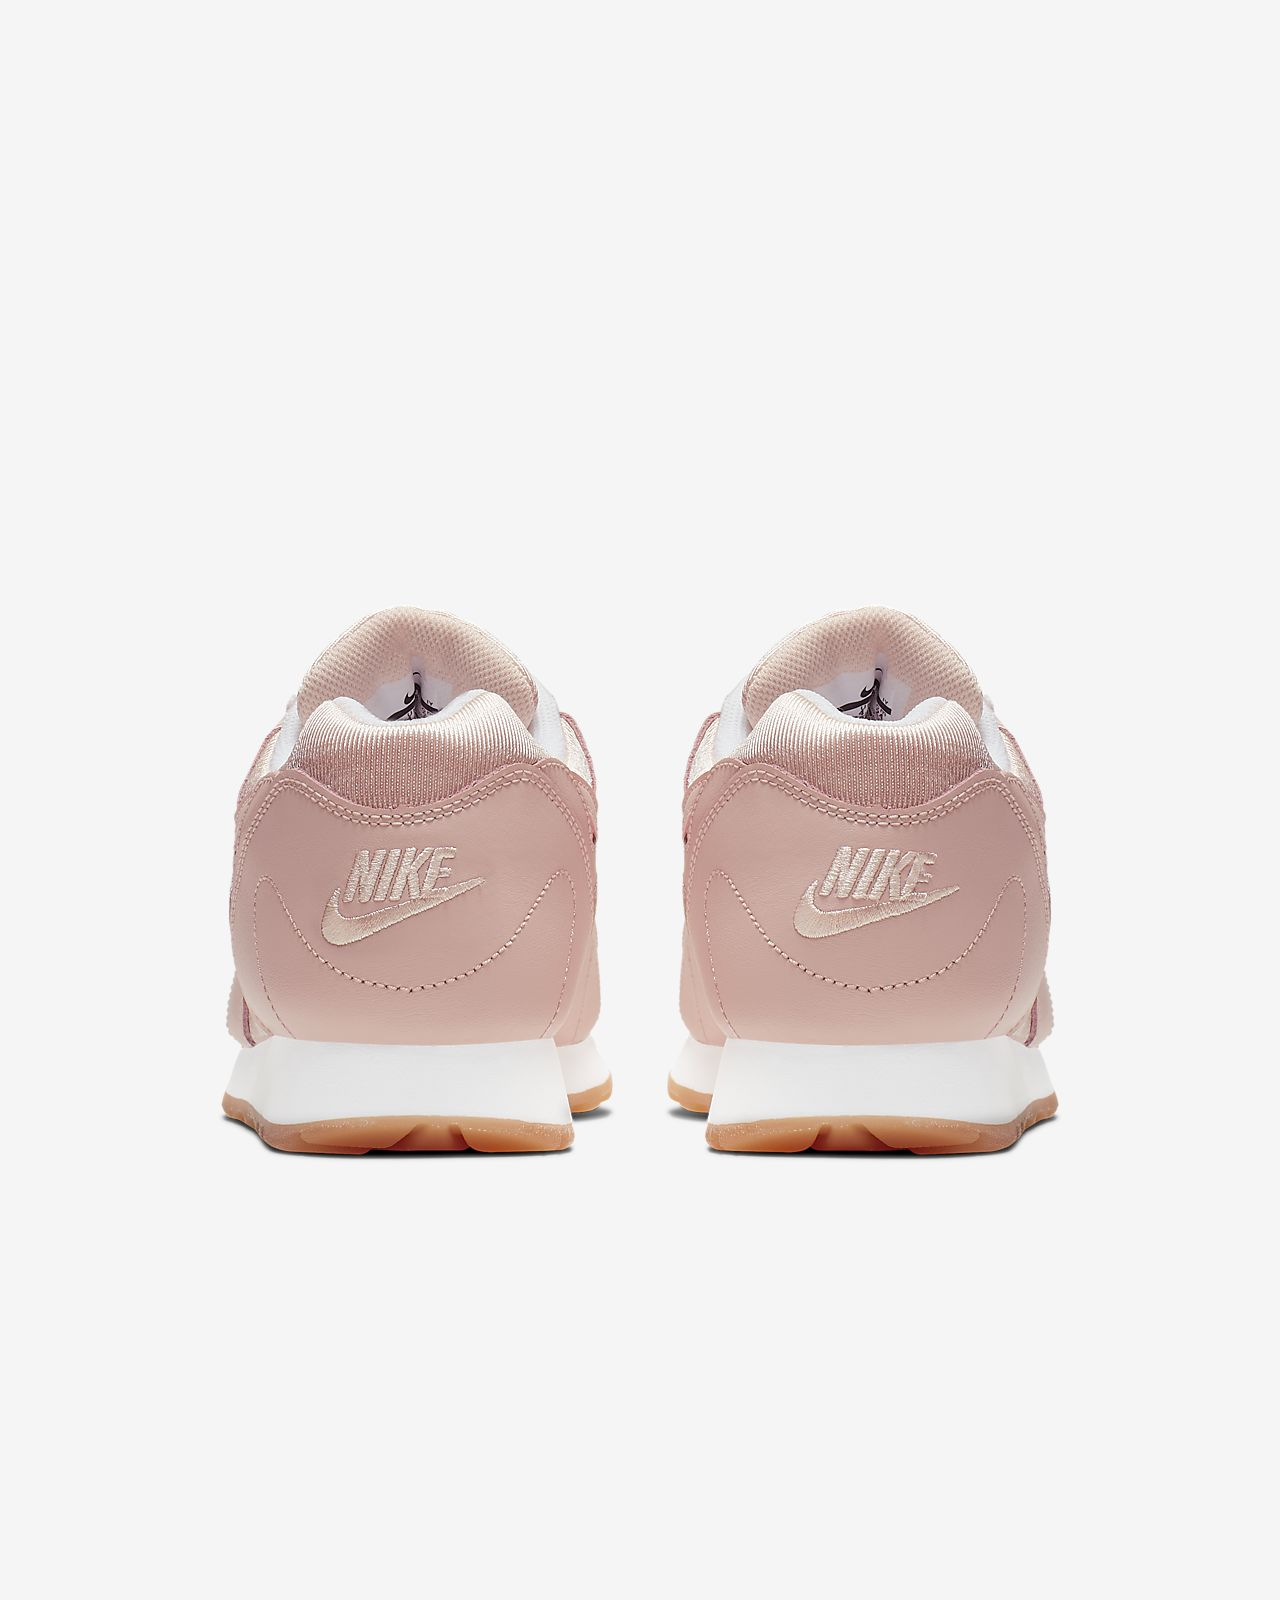 pretty nice 7a153 eed22 Low Resolution Nike Outburst Women s Shoe Nike Outburst Women s Shoe